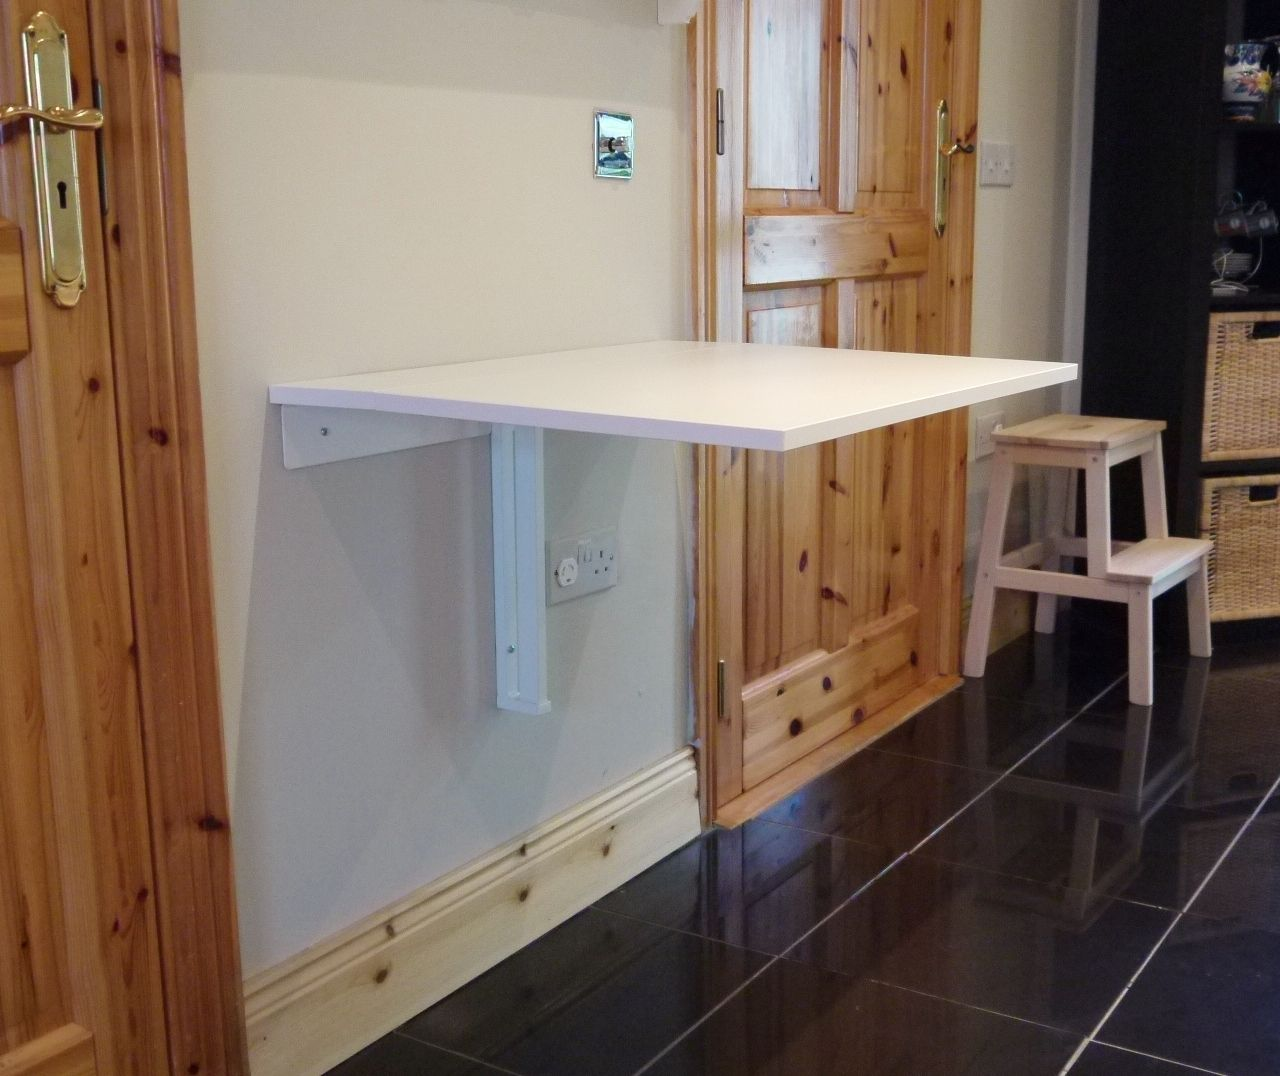 Fold Down Table Wall Mounted Plans Laundry Room Folding Table Fold Down Table Small Room Design